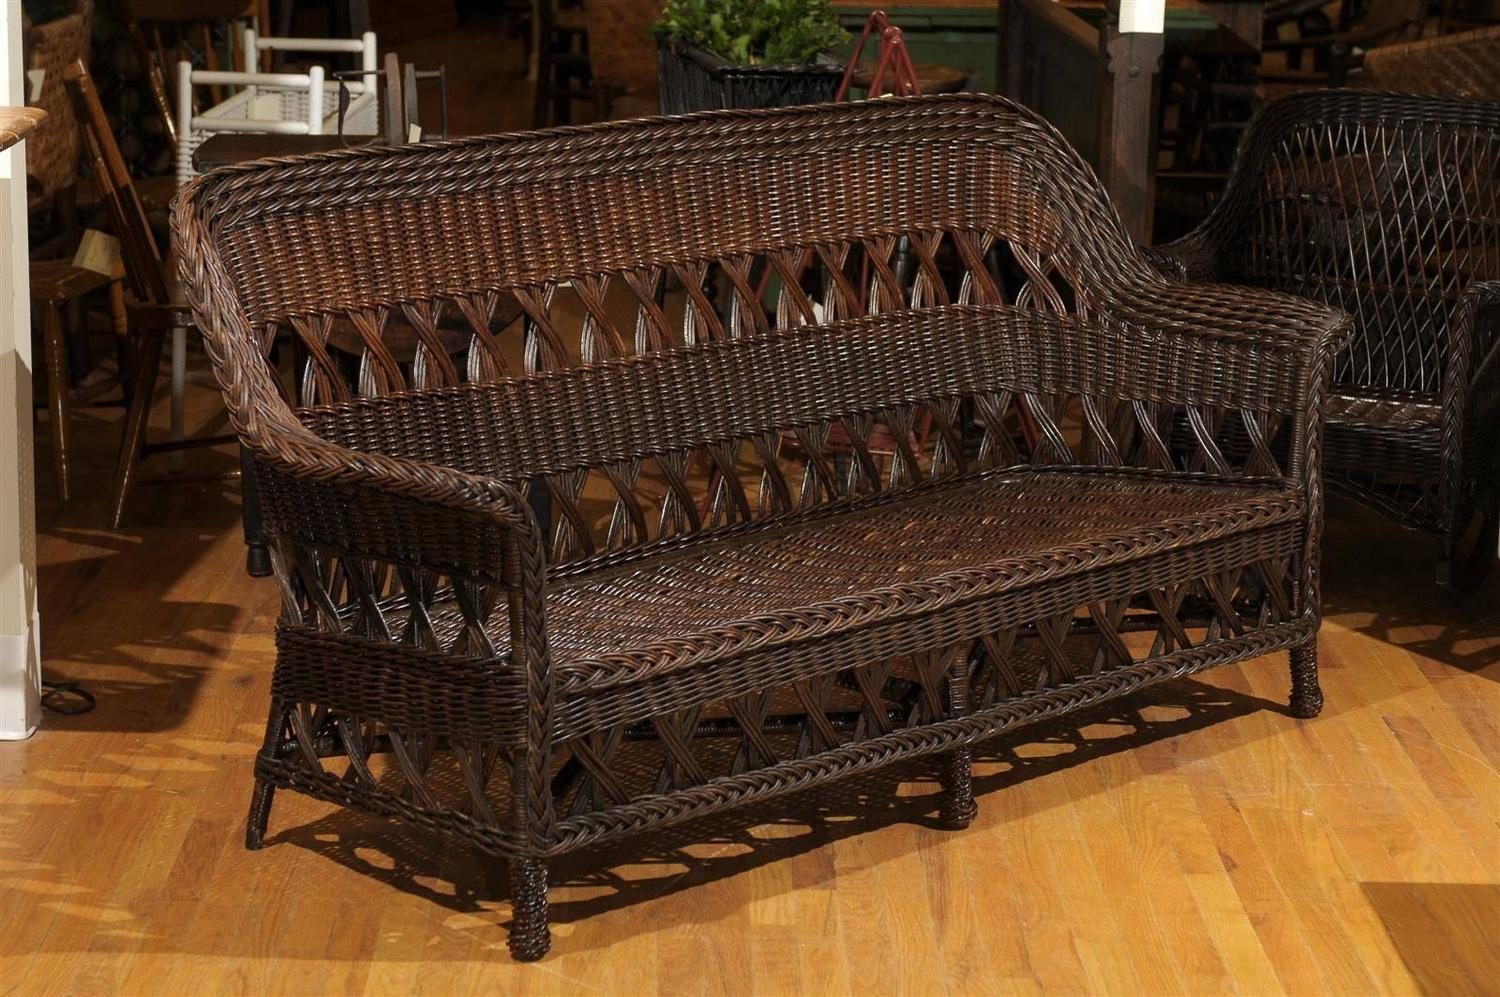 heywood wakefield wicker chairs rattan rocking chair signed sofa circa 1910 for sale